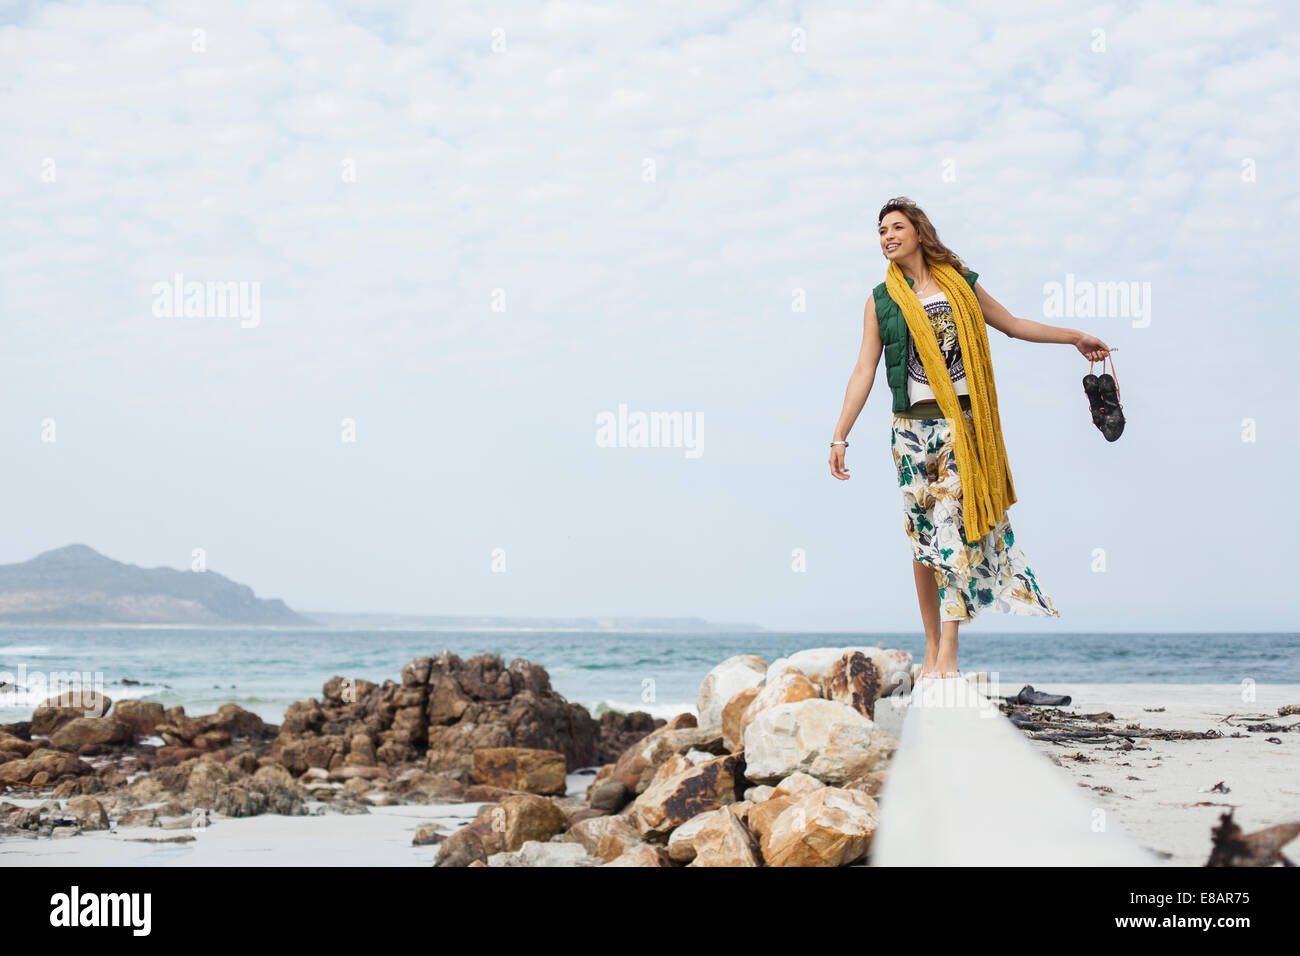 Young woman walking on cement block on beach, Cape Town, Western Cape, South Africa - Stock Image